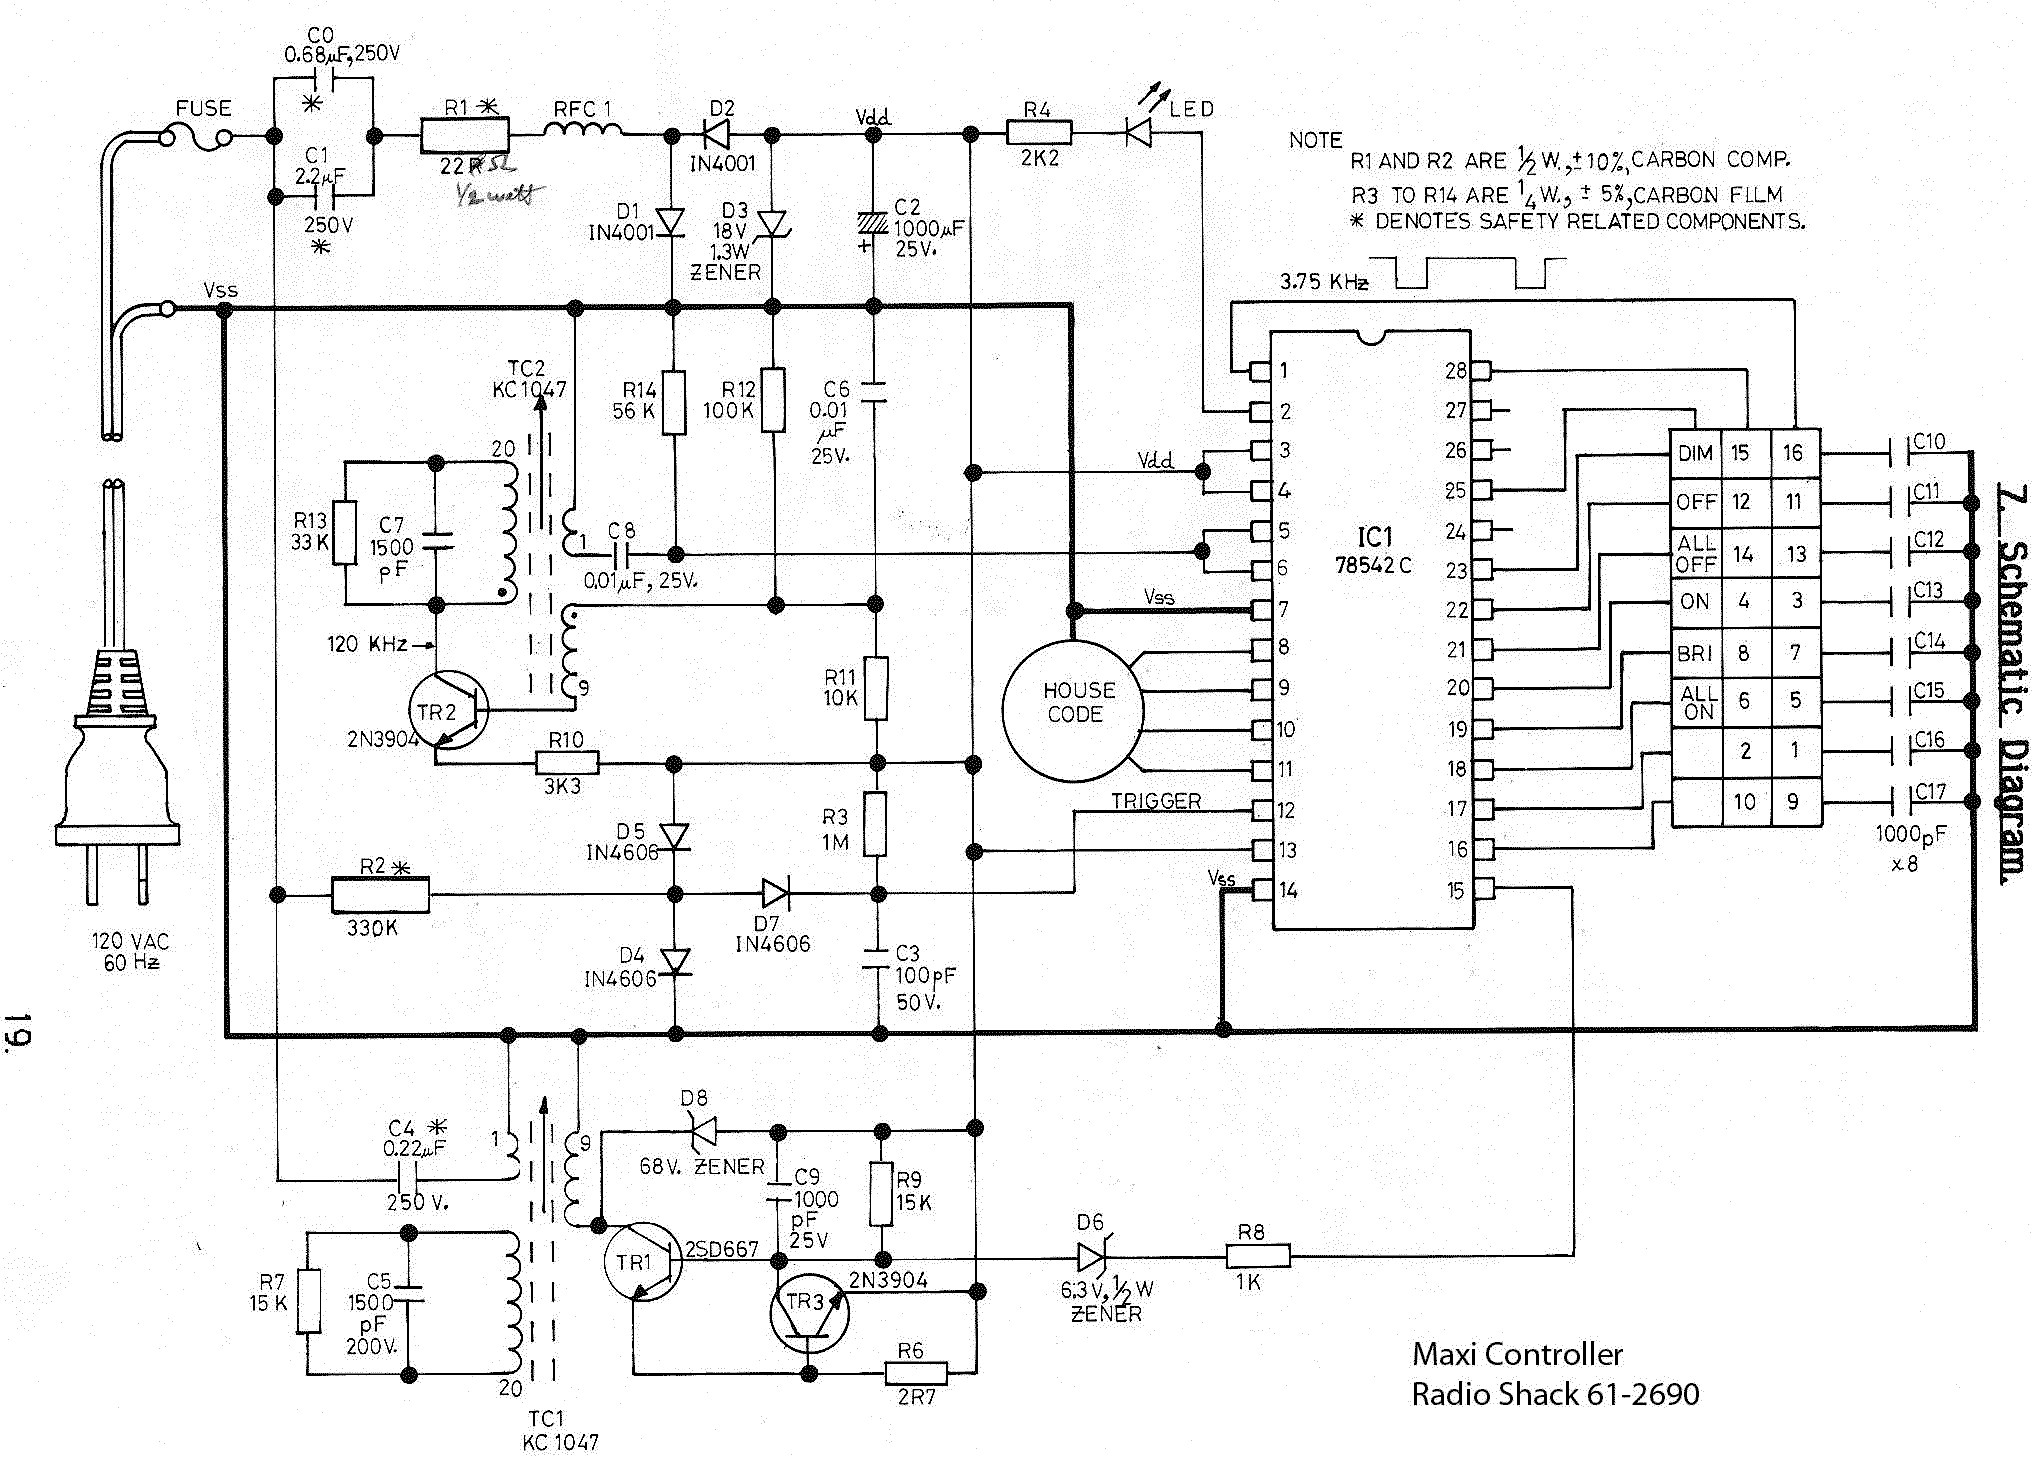 ups wiring diagram circuit motor control diagrams maintenance bypass switch gallery